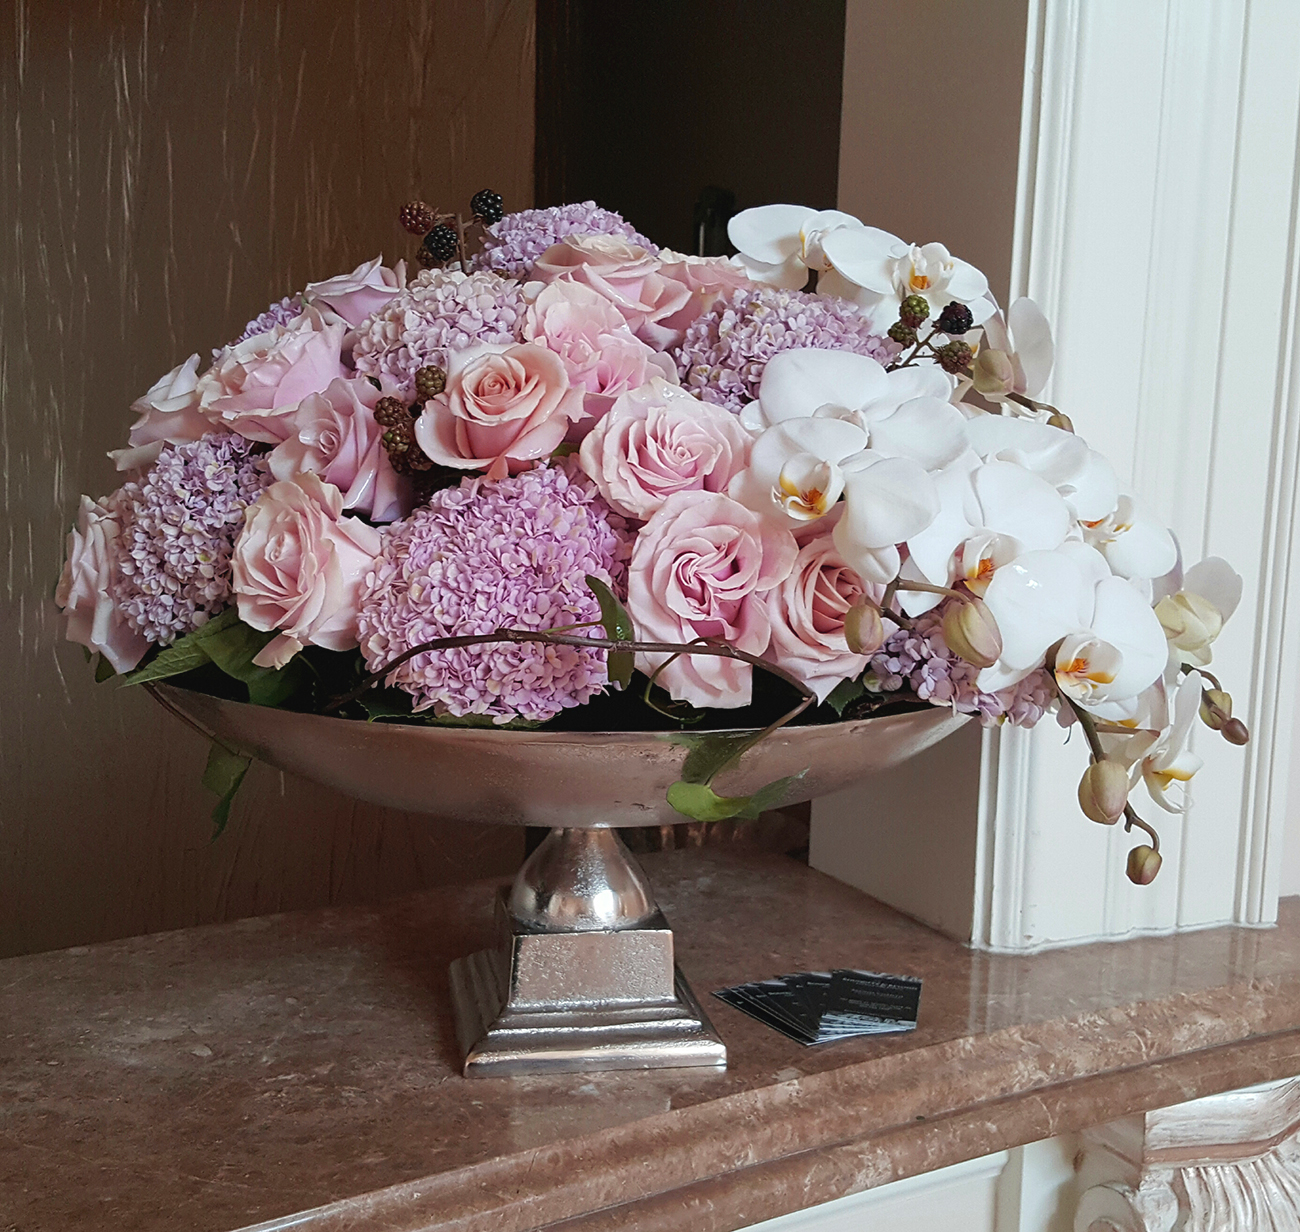 Pink and purple flower arrangement for event or everyday decor